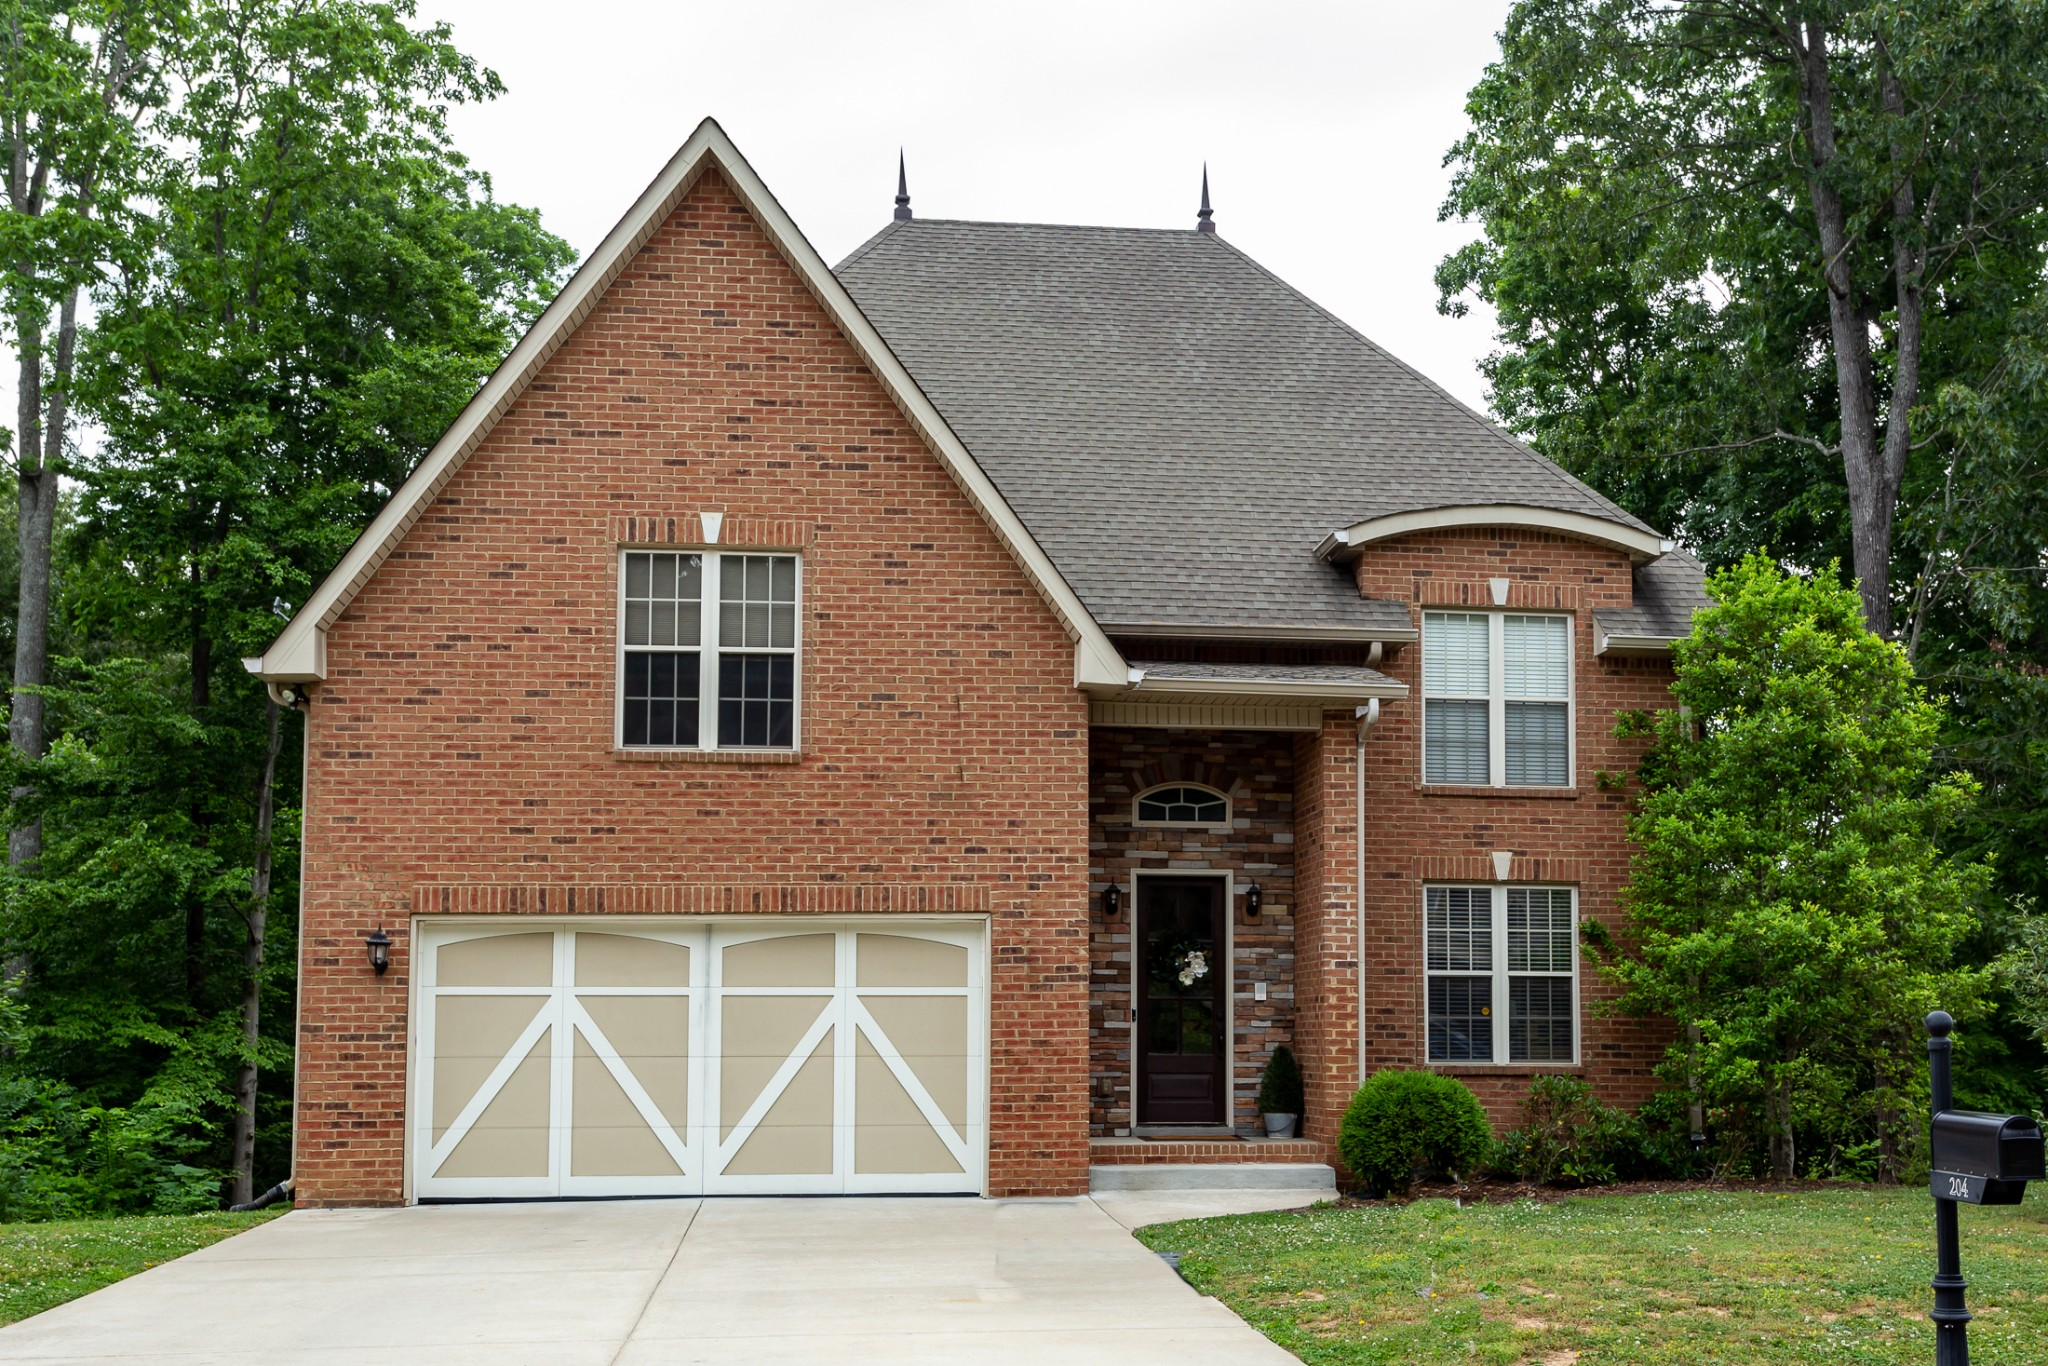 MAGNIFICENT ALL BRICK 4 BEDROOM HOME WITH HUGE BONUS ROOM. HARDWOOD THRUOUT 1ST FLOOR WITH CARPET IN BEDROOMS. OPEN FLOOR PLAN. 2 BEDROOMS ON EACH LEVEL. GOURMET EAT-IN KITCHEN. MASTER SUITE HAS FIREPLACE, WET BAR, HUGE WALK-IN CLOSET. 2ND FLOOR LOFT OVERLOOK. BONUS ROOM CAN BE 5TH BEDROOM. NO HOA. NO BACK YARD NEIGHBORS. 2100 SQ FT UNFINISHED BASEMENT FOR EXPANSION. LOTS OF CUSTOM EXTRAS.